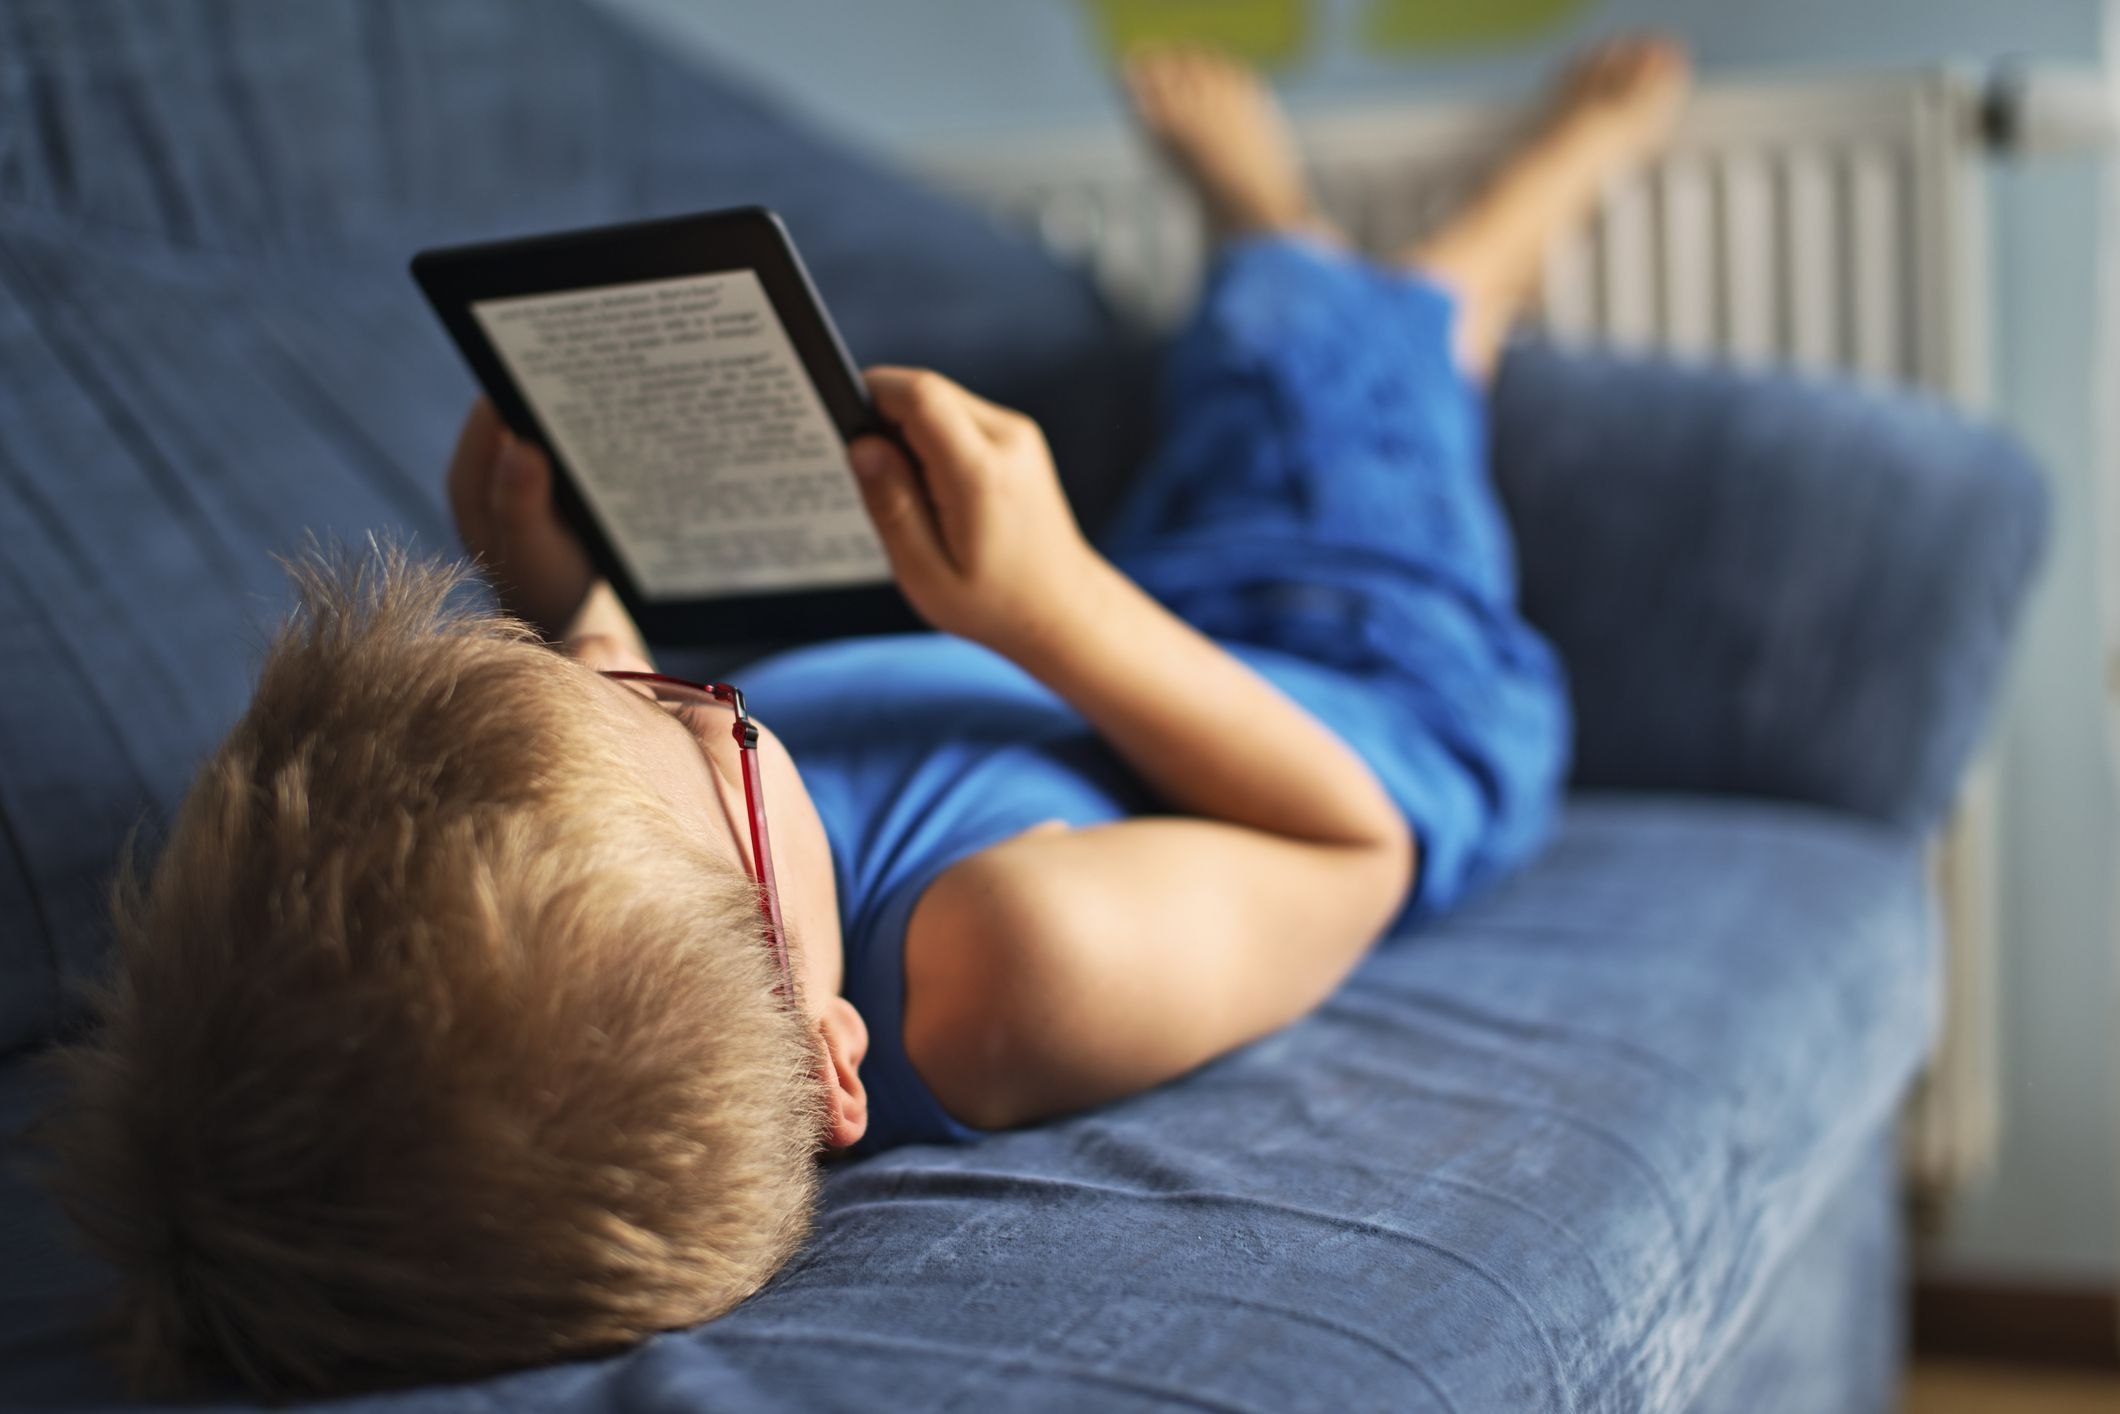 find out the best places online to get free kindle books for kids